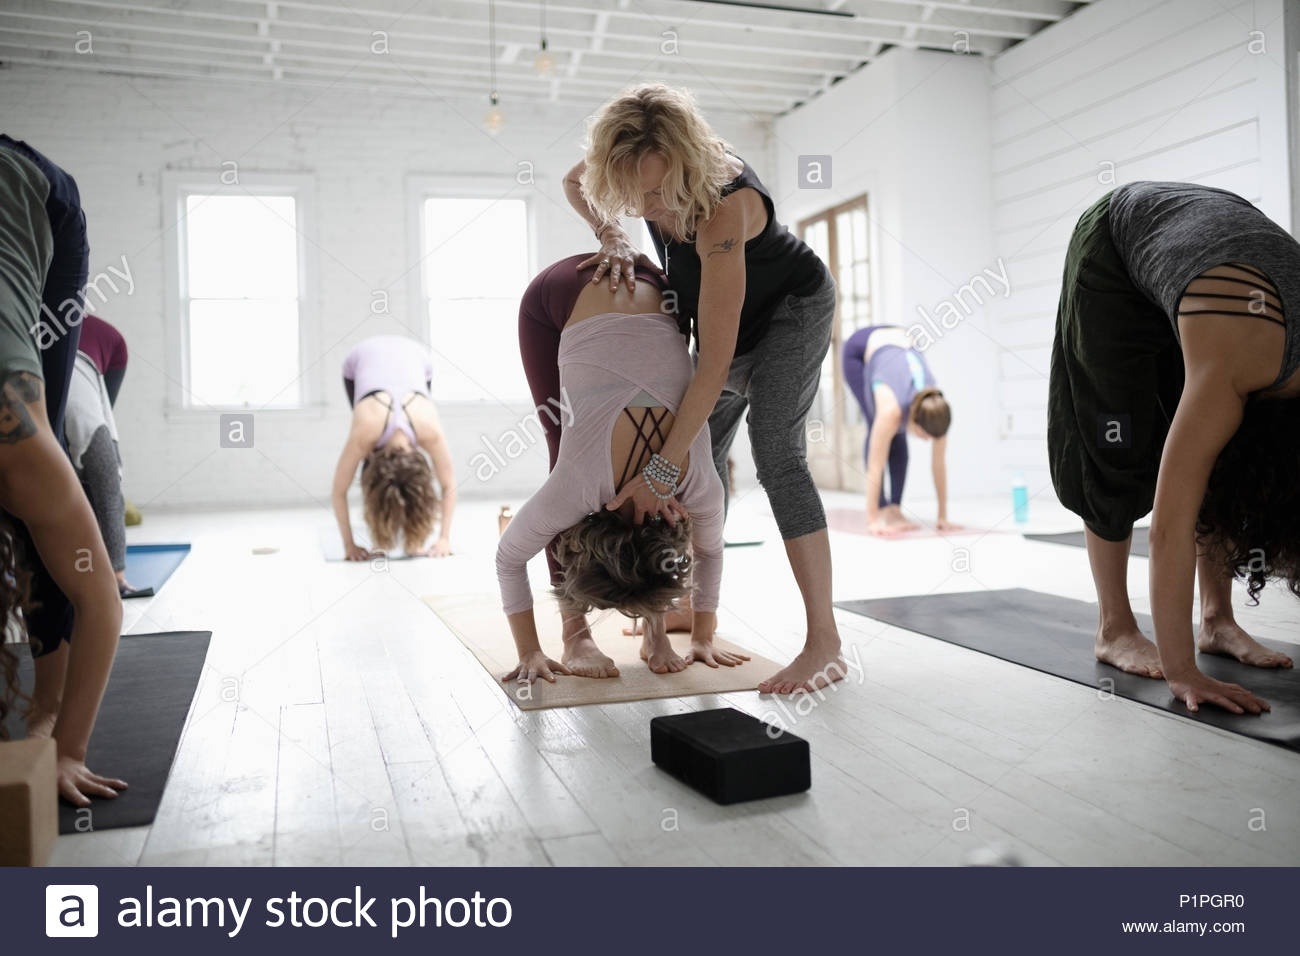 Yoga instructor helping woman practicing forward bend in yoga class - Stock Image